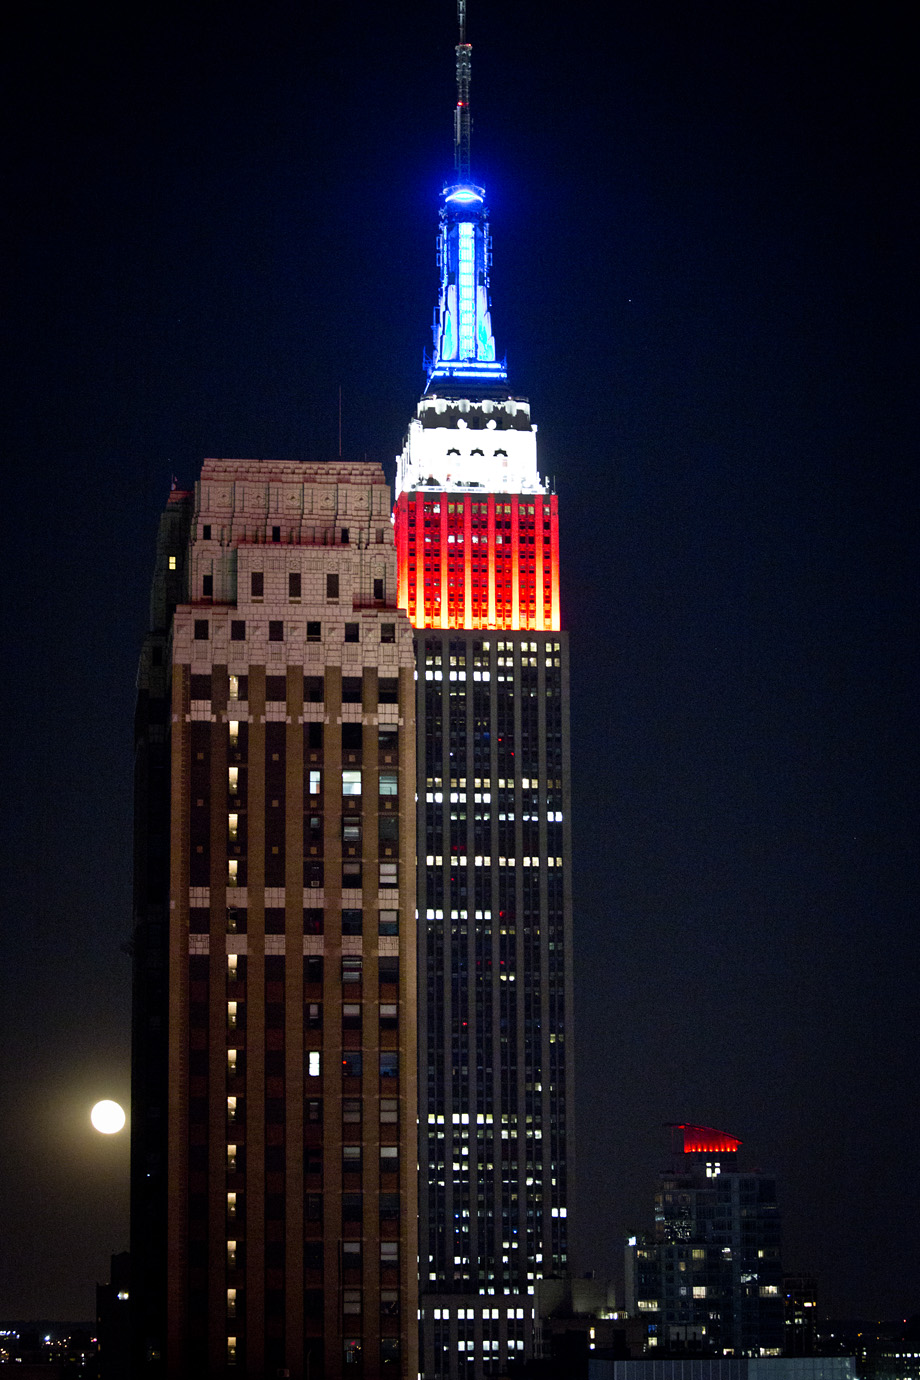 Empire States Building lit up at night red white and blue colours with the moon in the dark sky